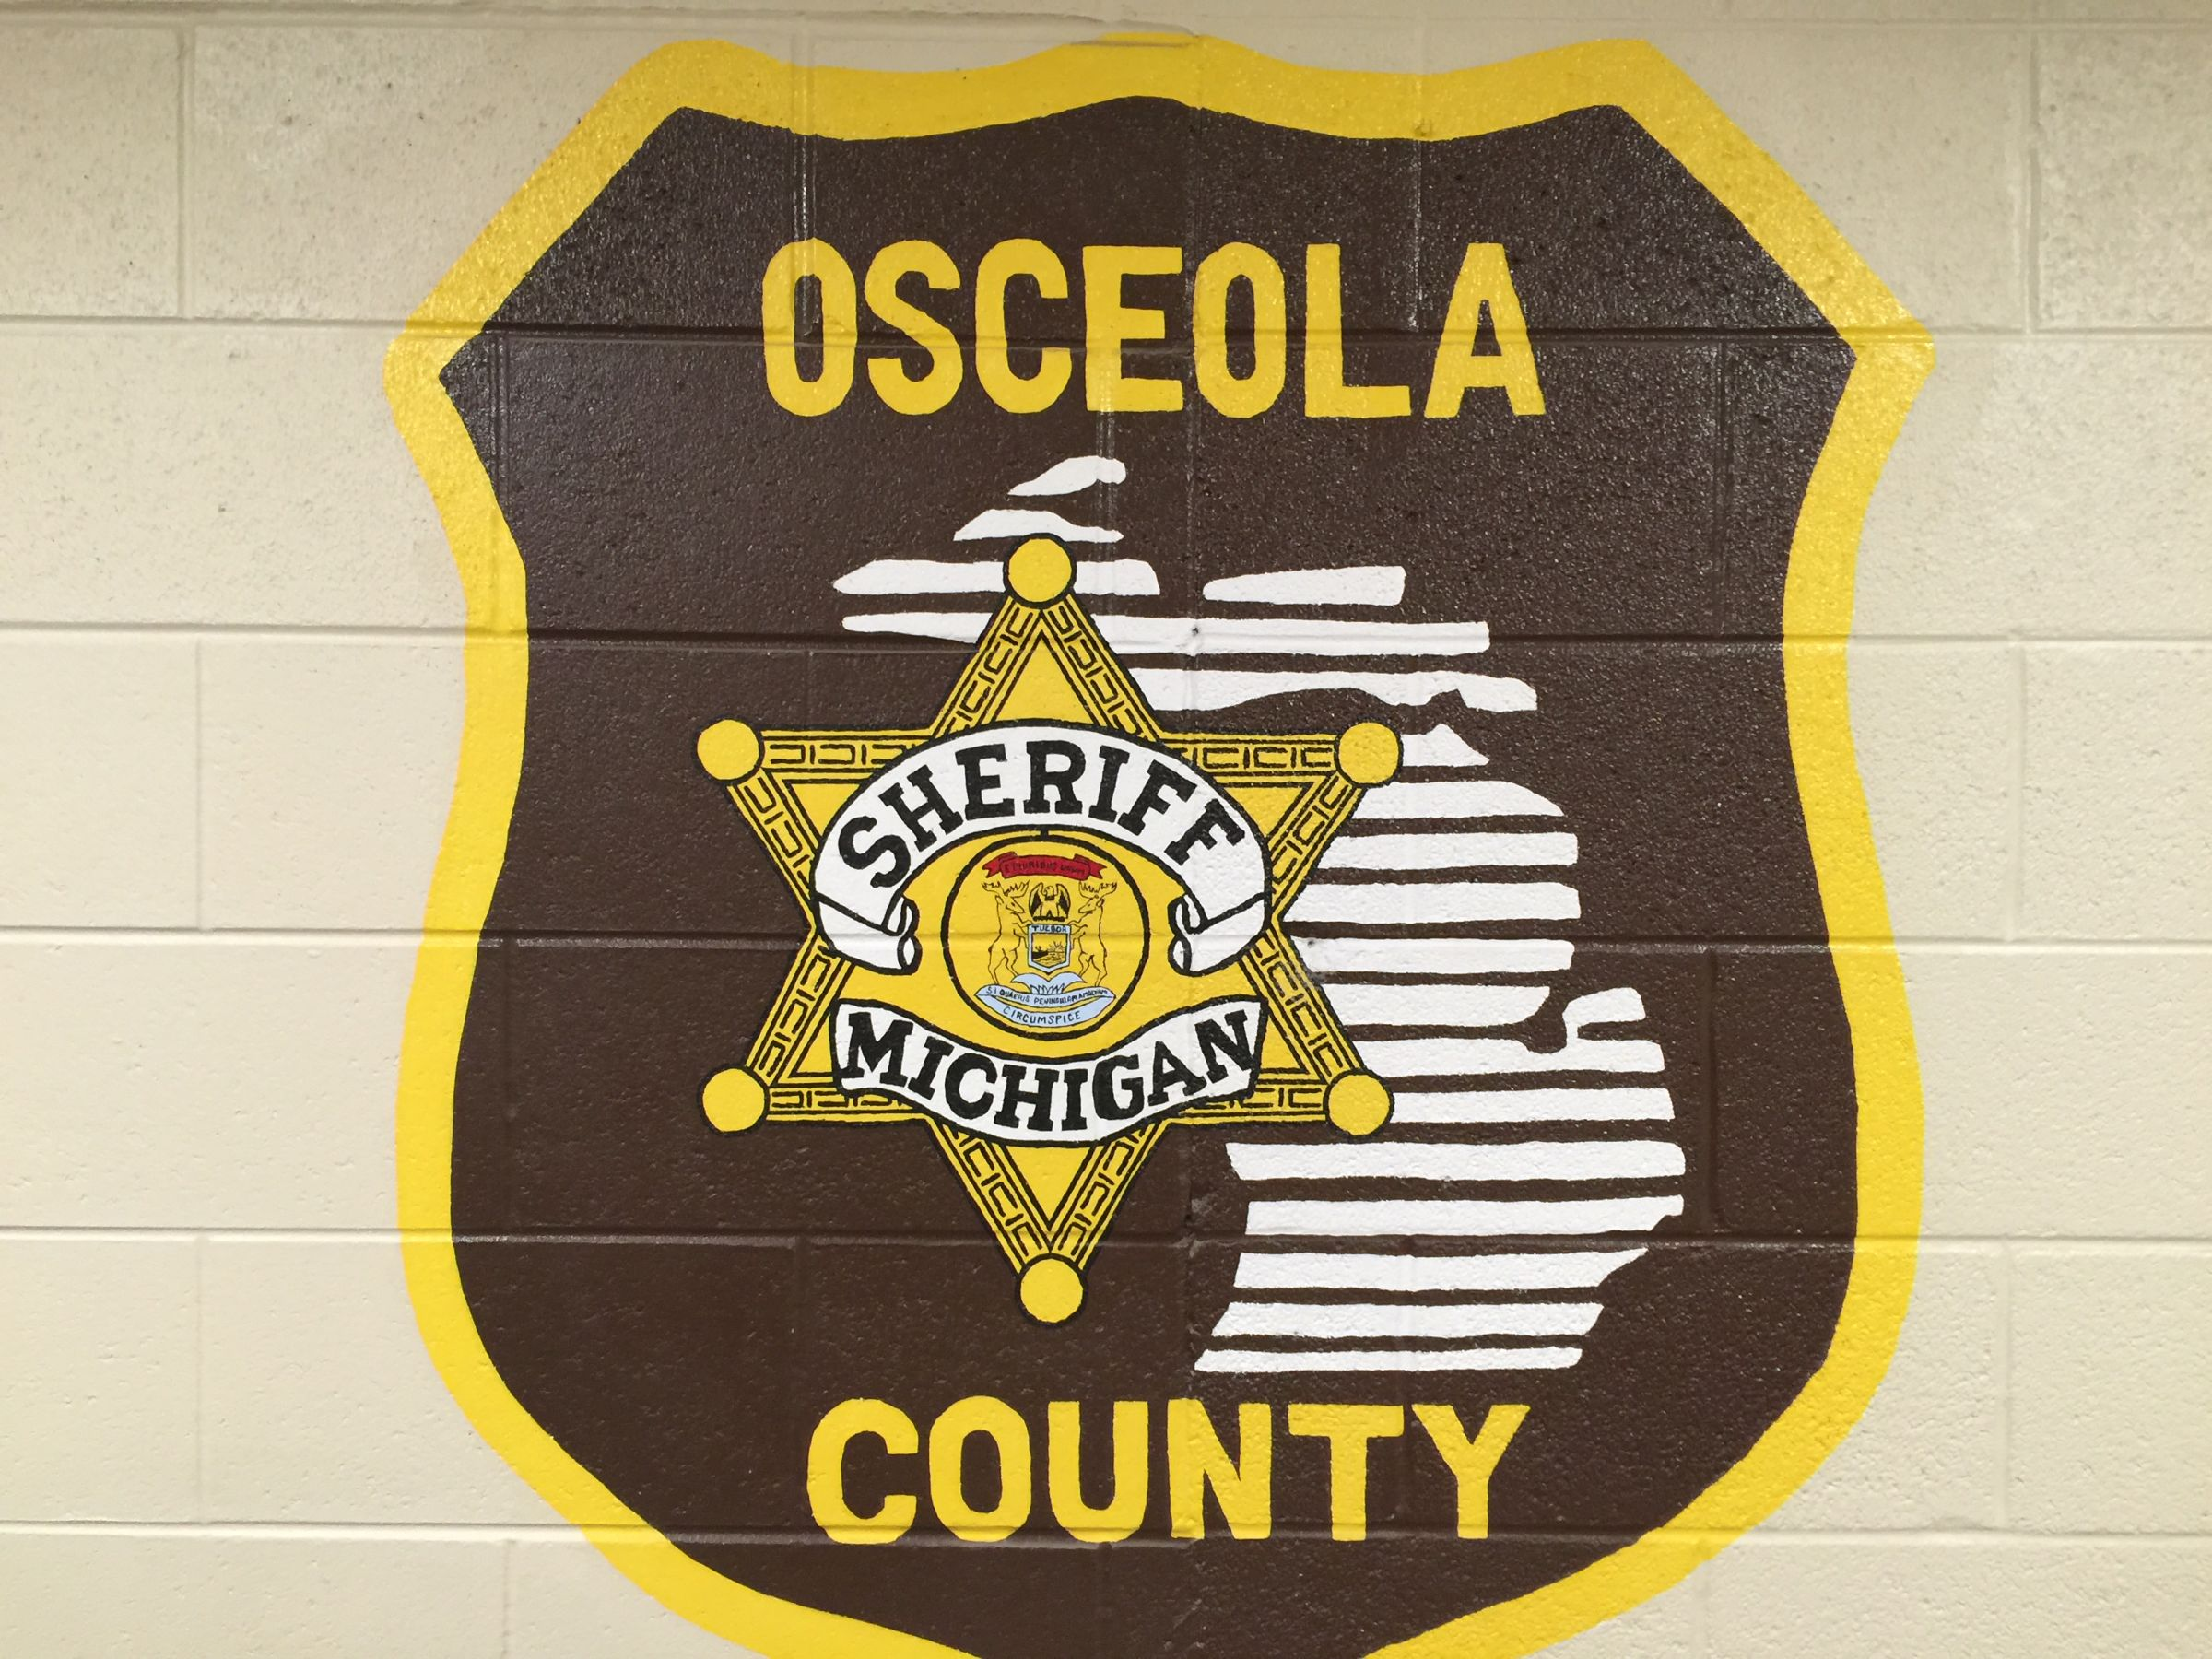 Michigan mecosta county barryton - Evart Child Found After Going Missing For A Few Hours